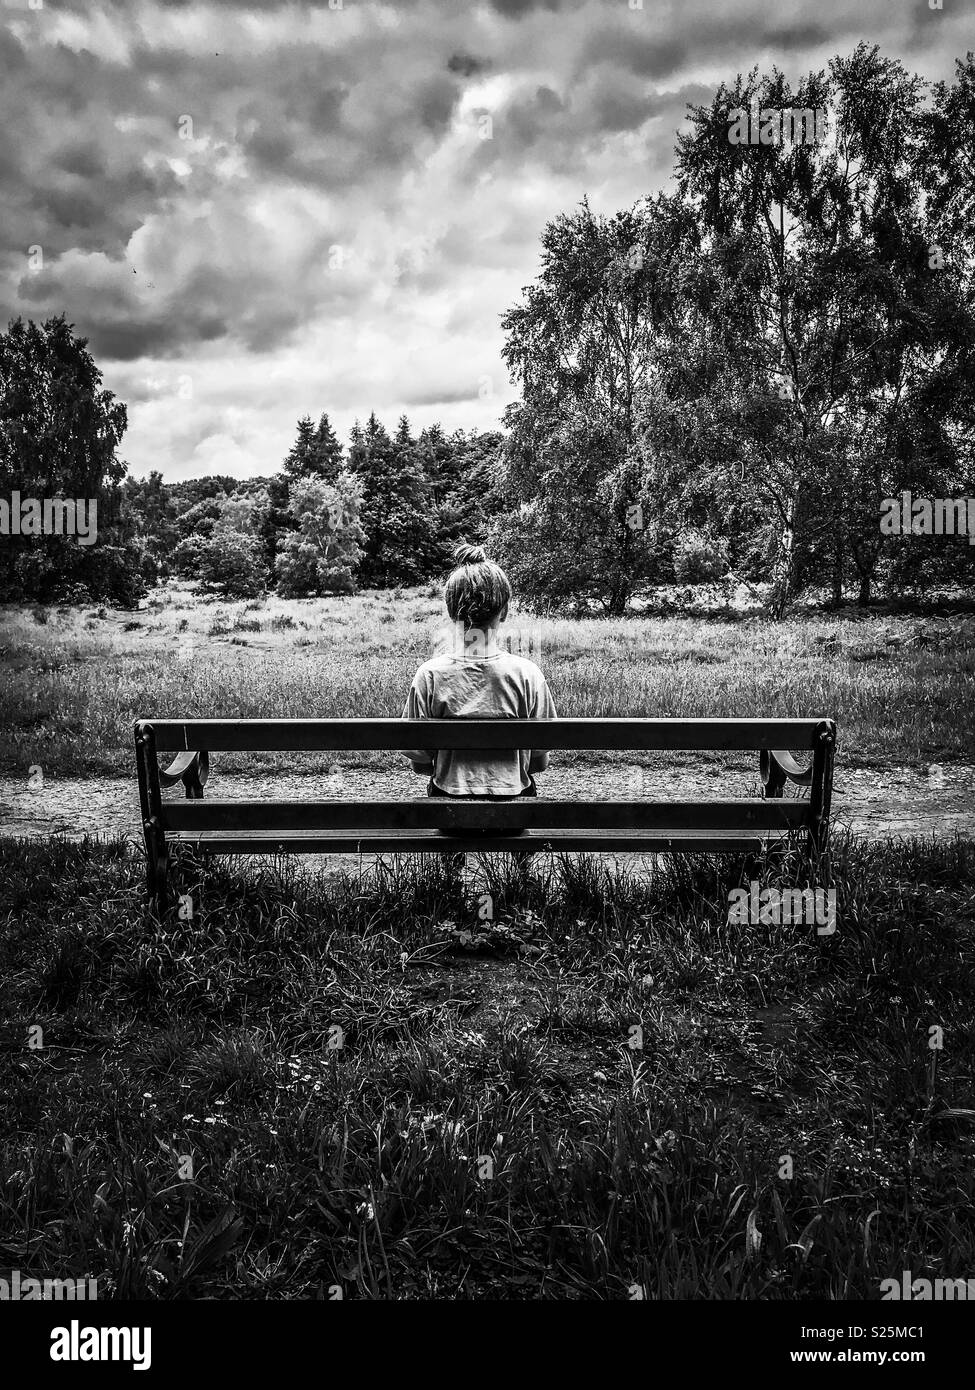 Girl sitting alone on a bench dark skies black and white